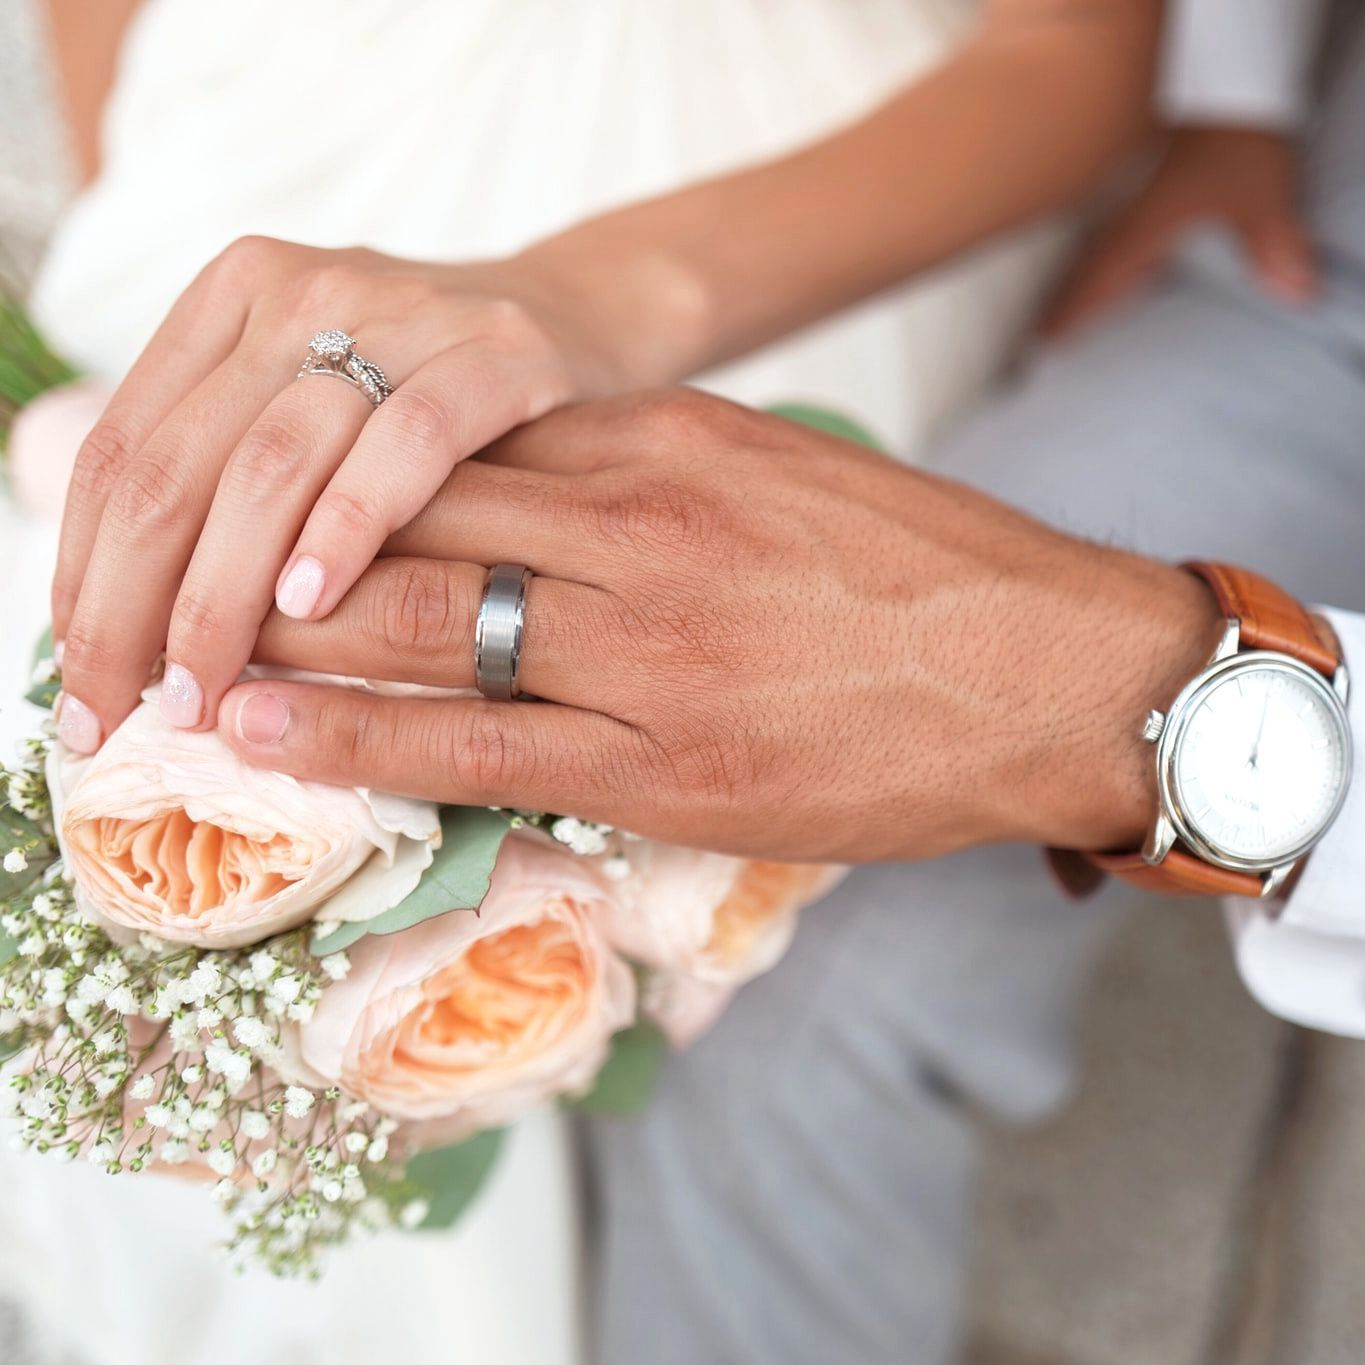 House buying tip for the newlyweds how to get the home